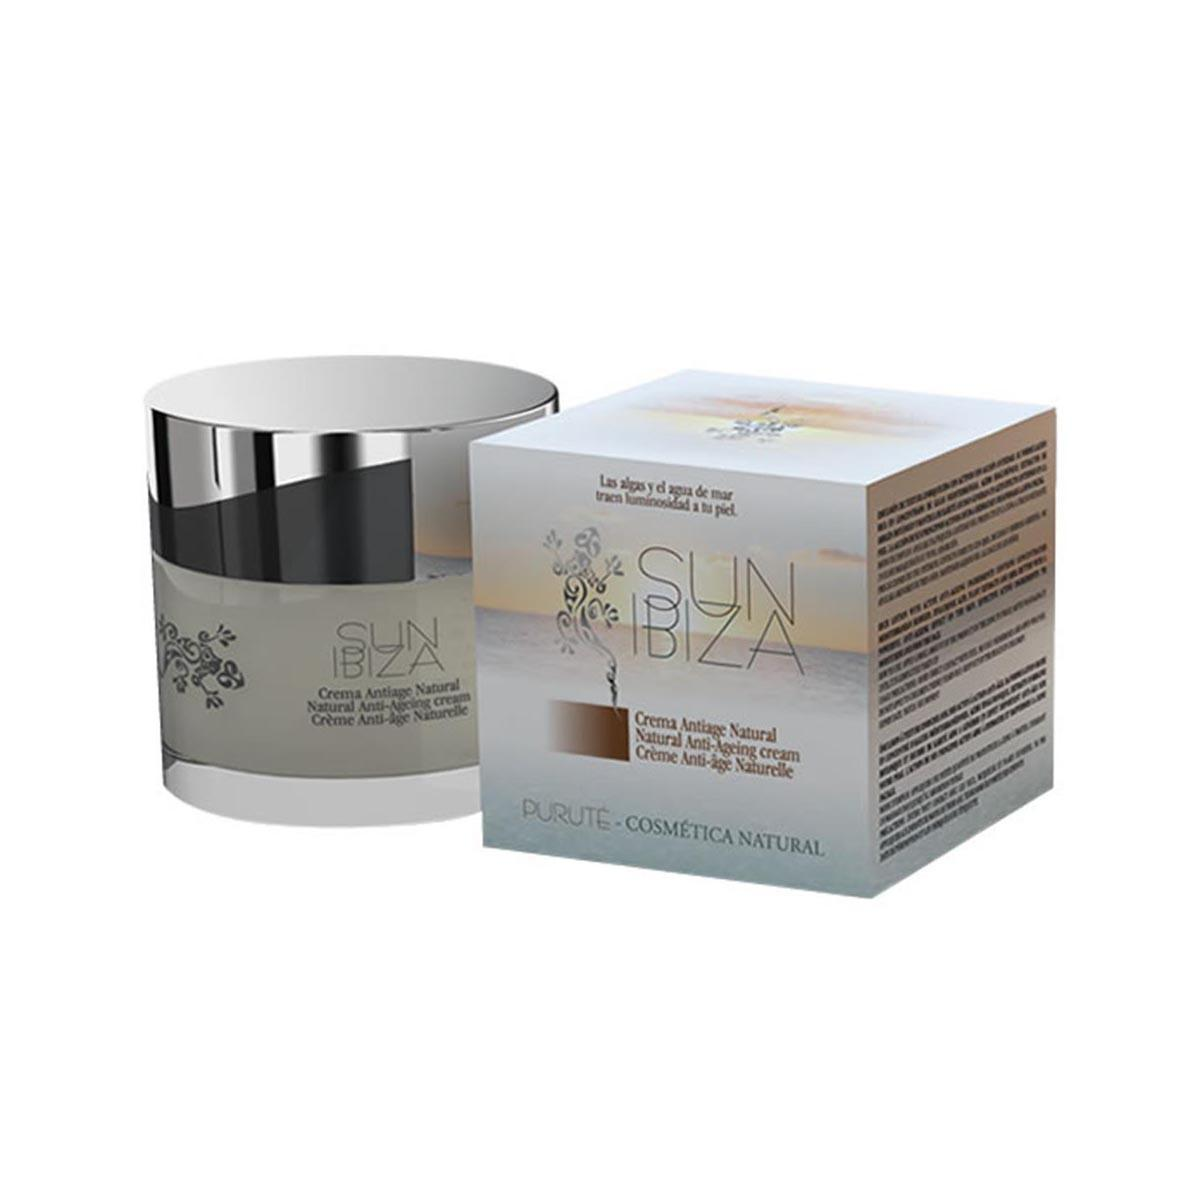 Consumo Sun Ibiza Purute Cream Antiage Natural 50 ml